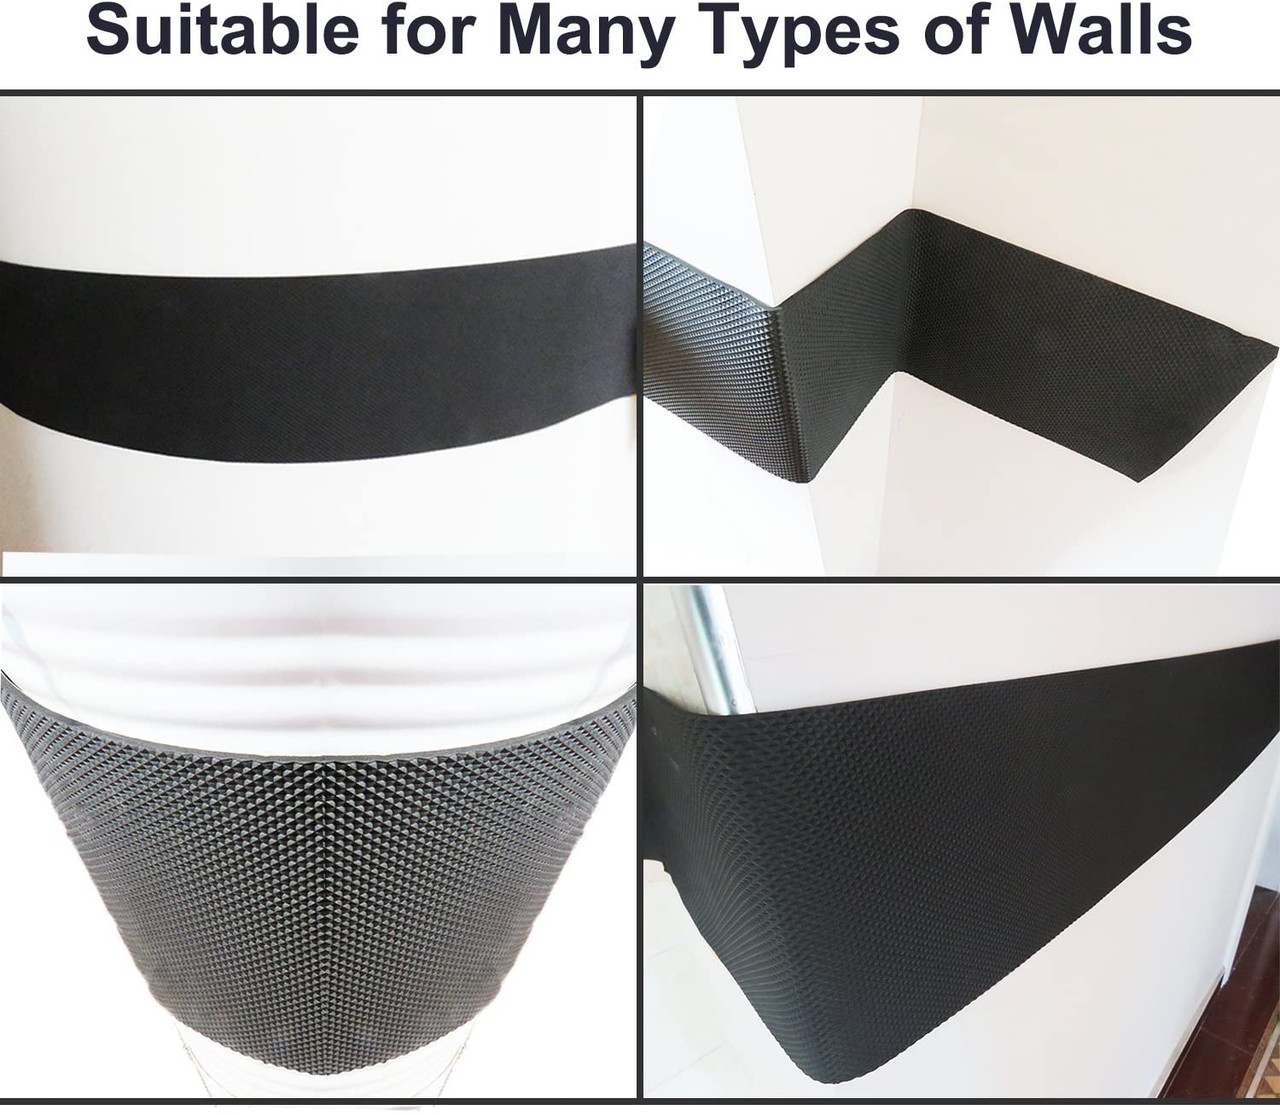 Ampulla GWP01 Ultra Thick Waterproof Garage Wall Protector, Designed in Germany